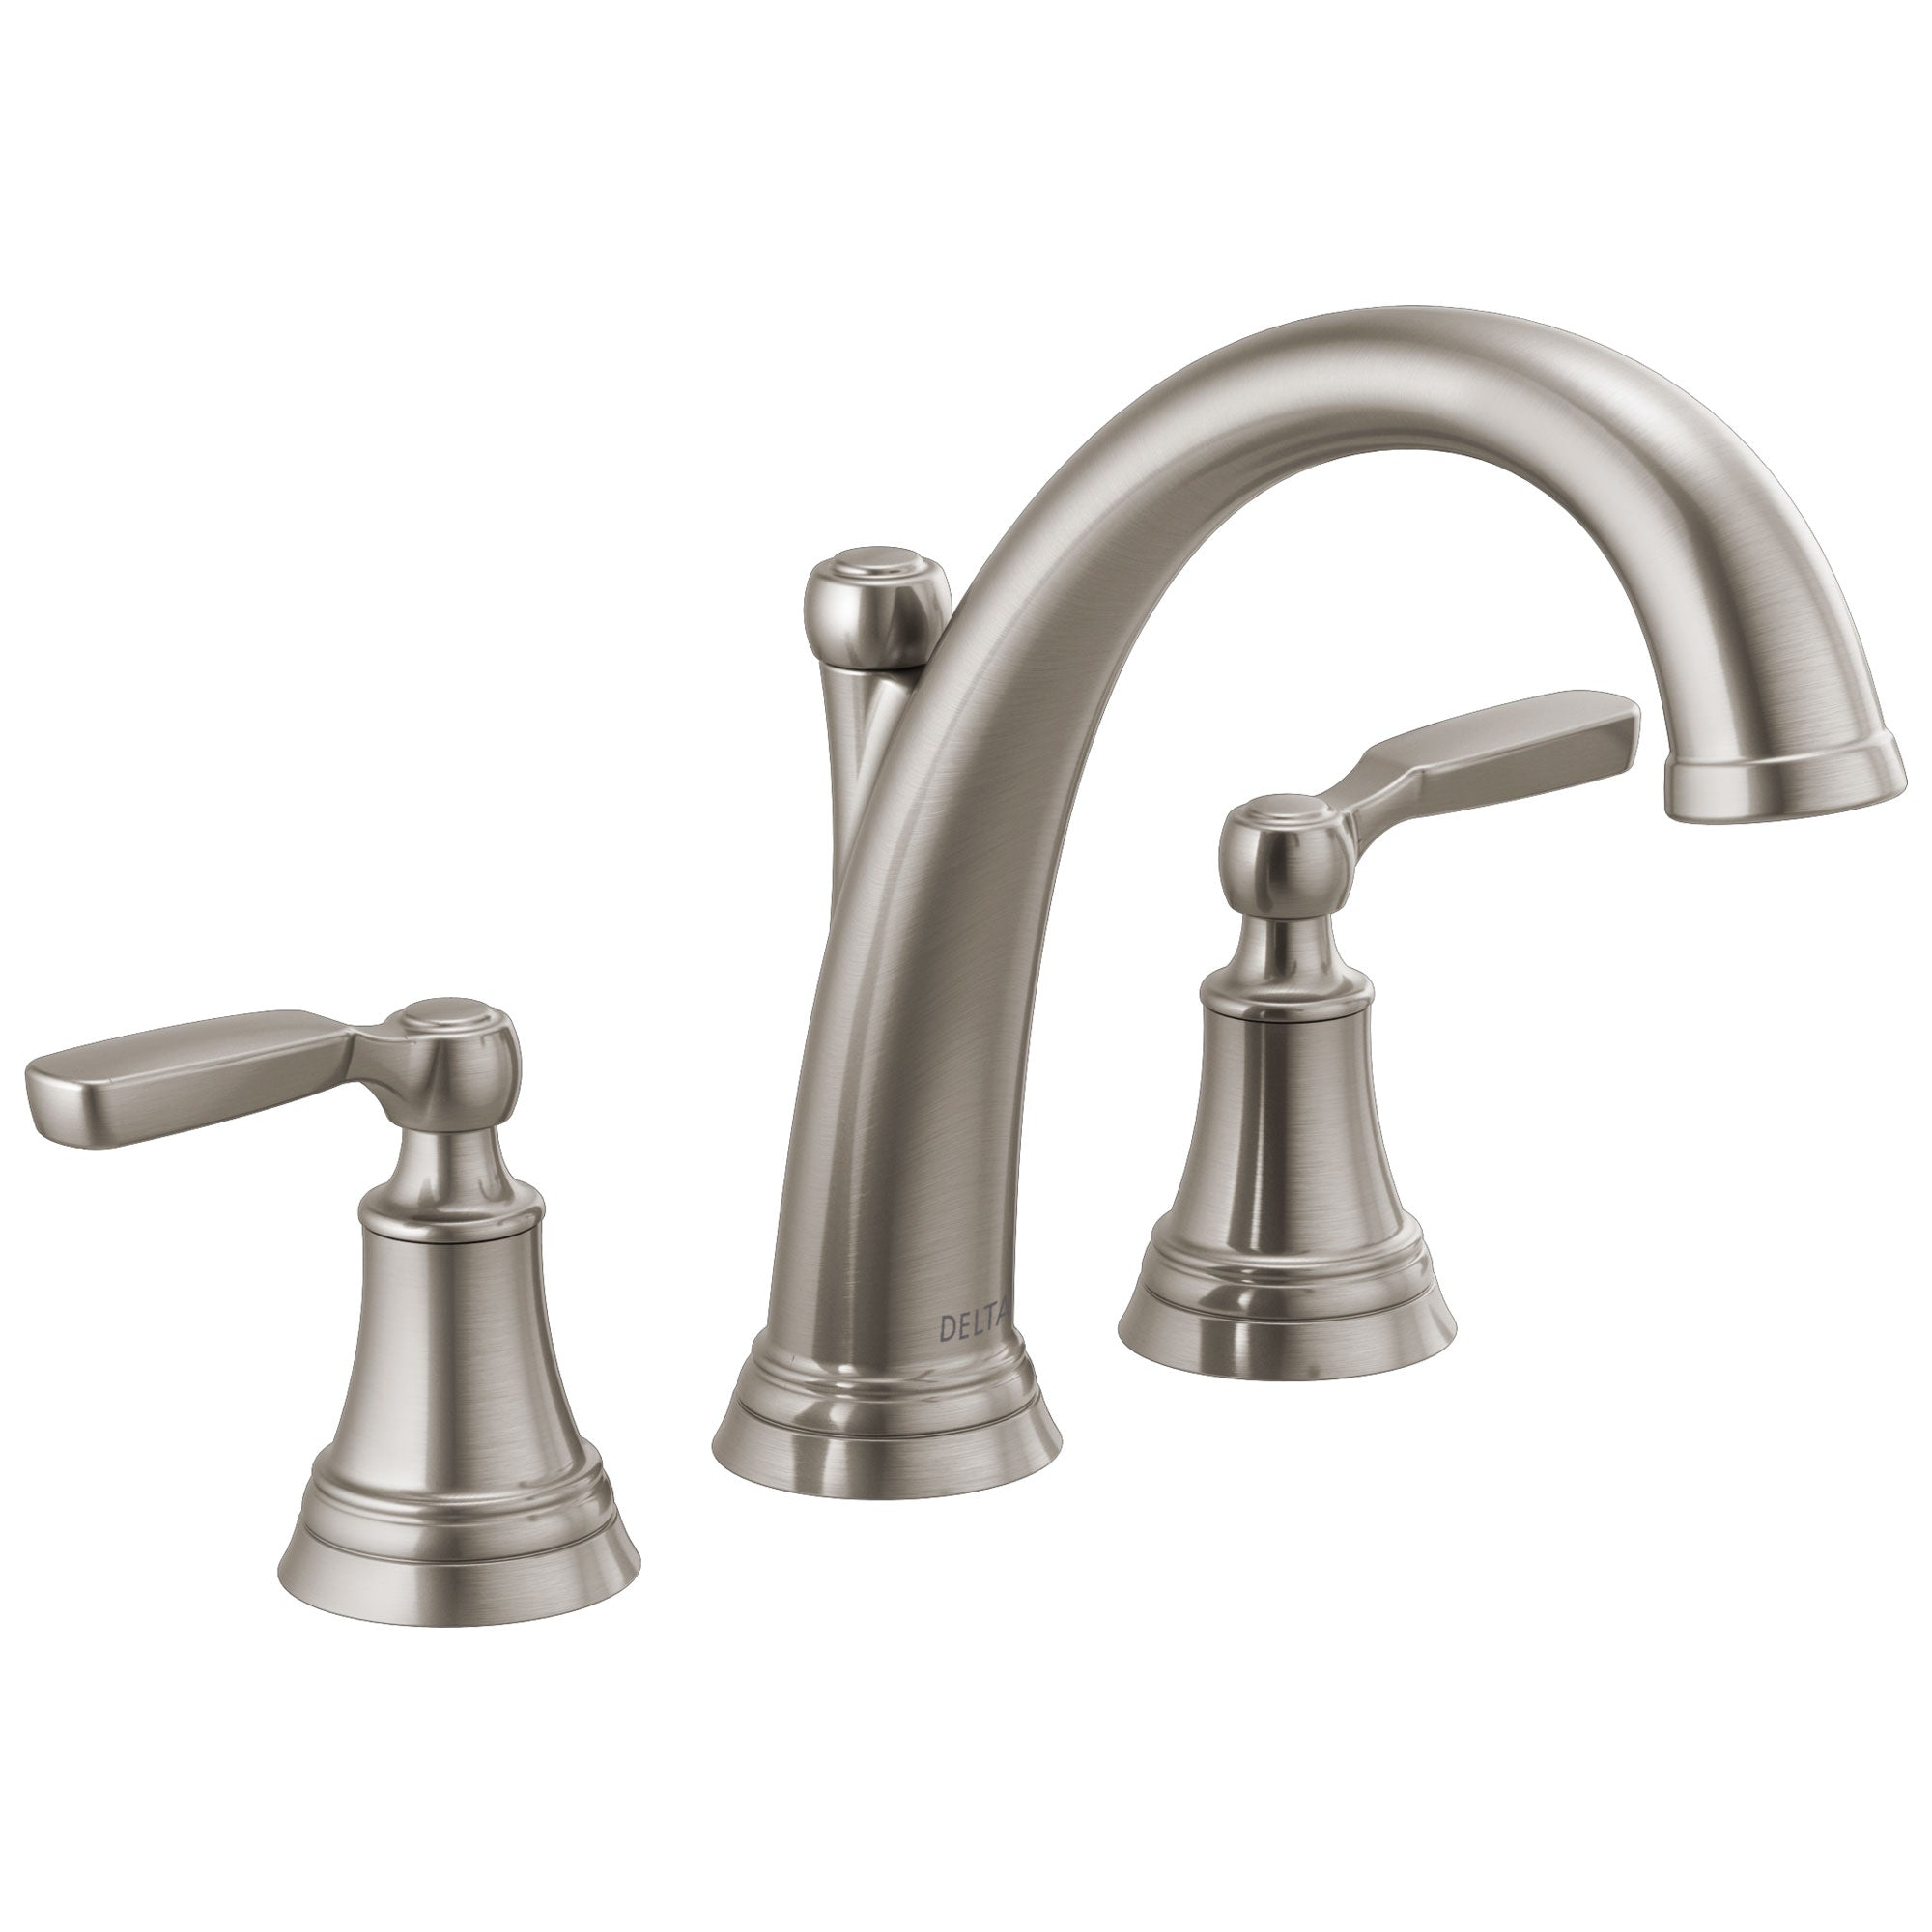 Delta Woodhurst Stainless Steel Finish Deck Mount Roman Tub Filler Faucet Includes Rough-in Valve and Lever Handles D3164V